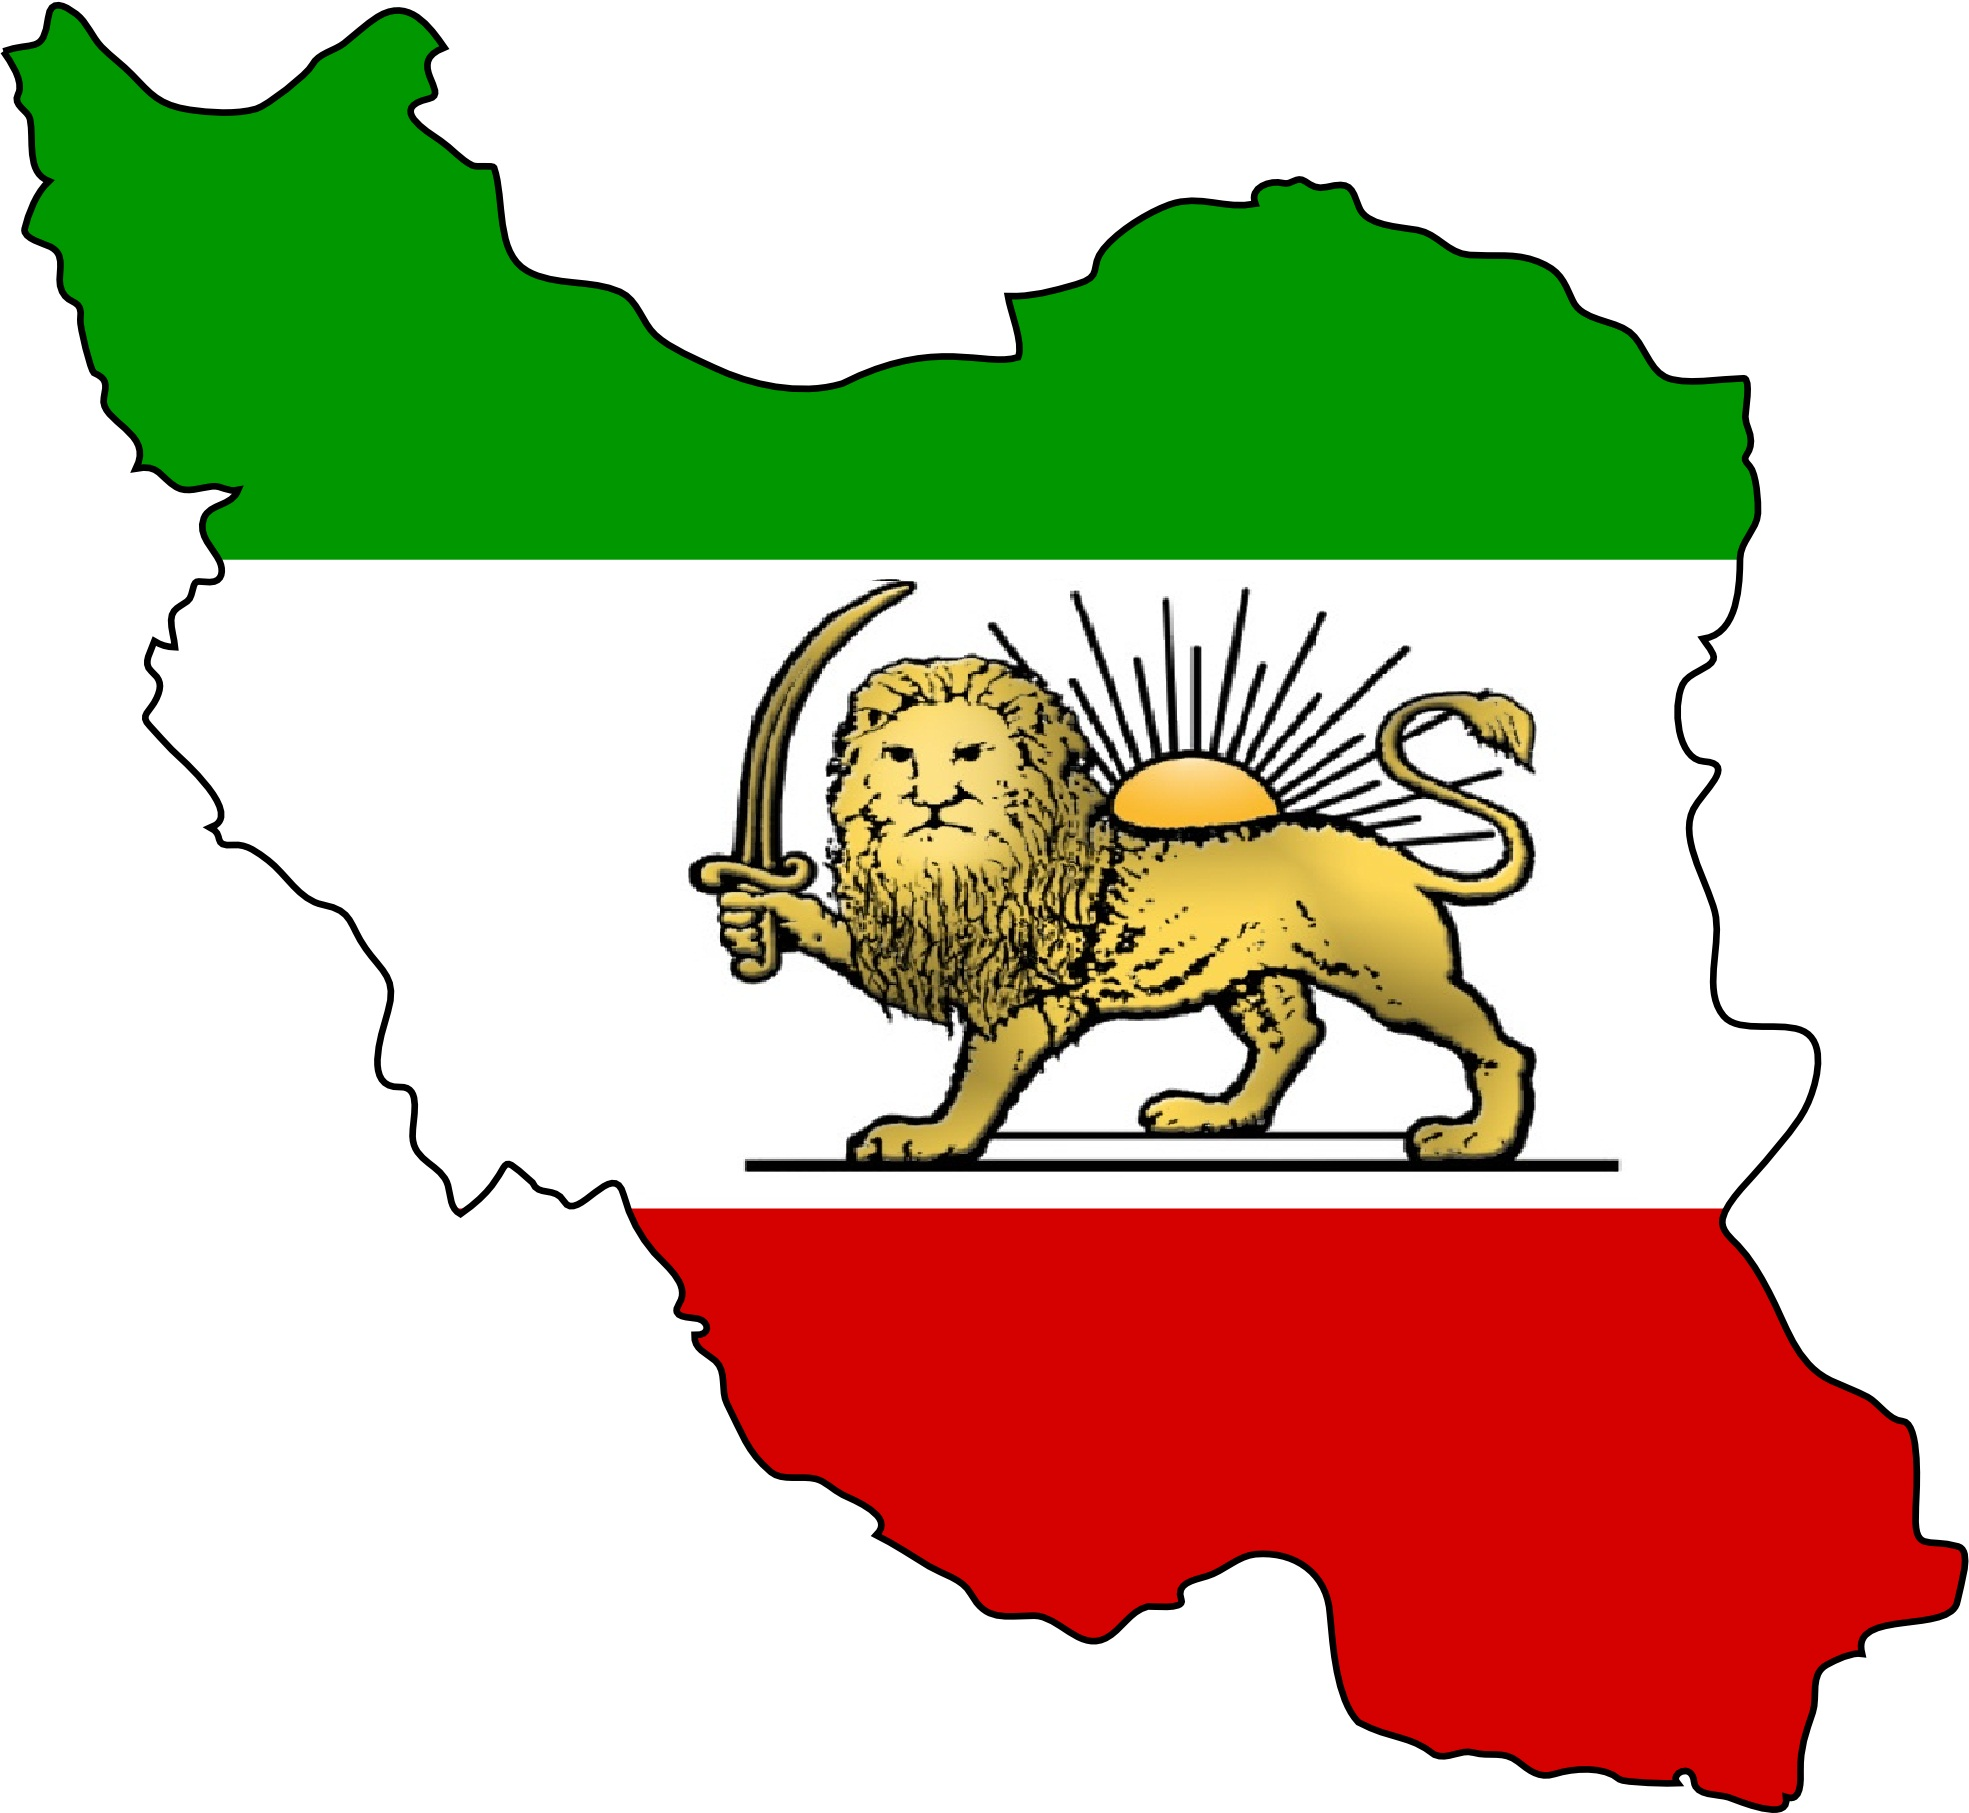 file shir   khorshid lion and sun map iran jpg wikimedia free graphics images religious free graphics images sites